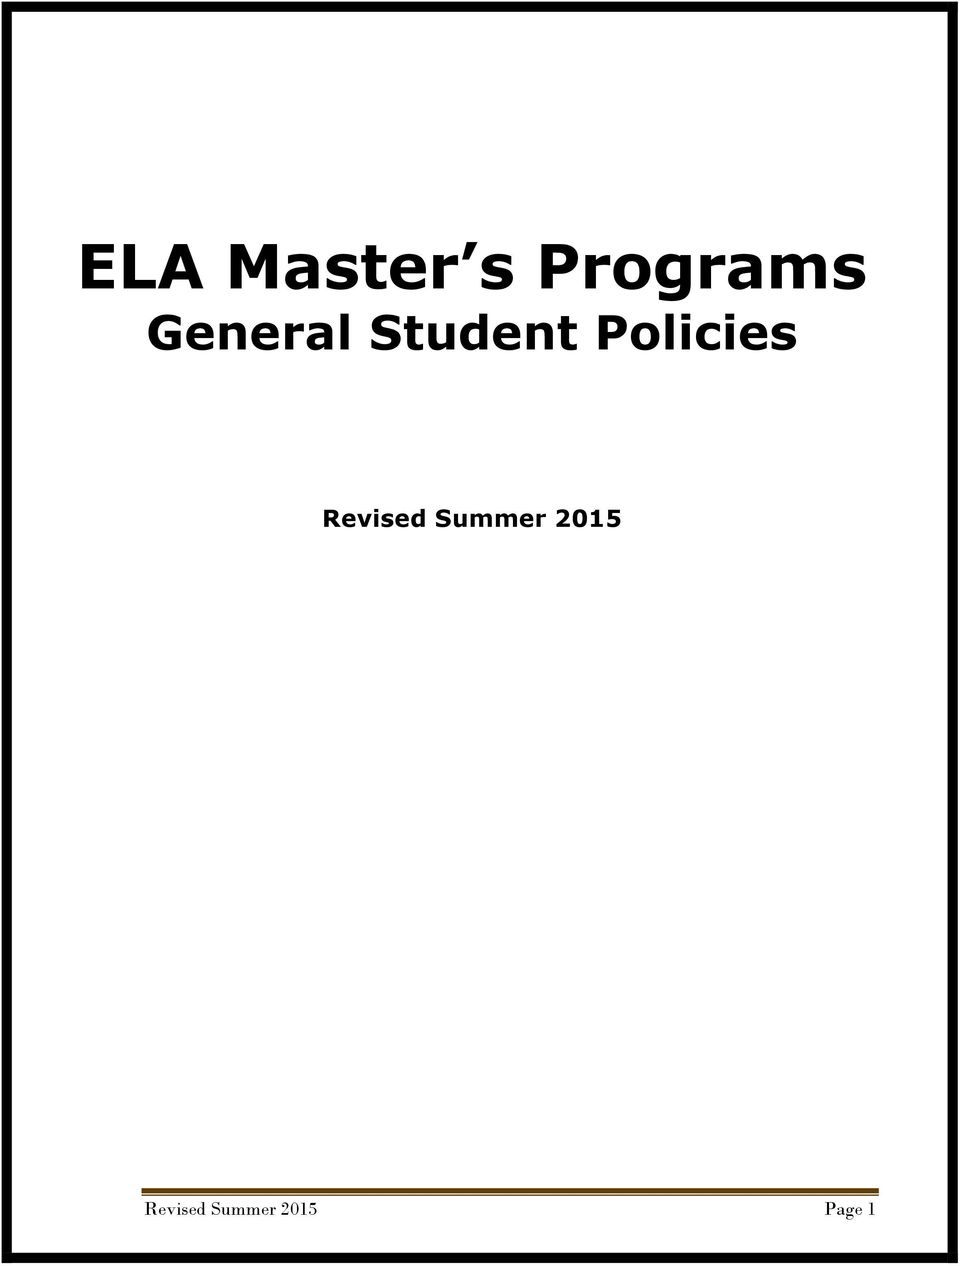 Policies Revised Summer